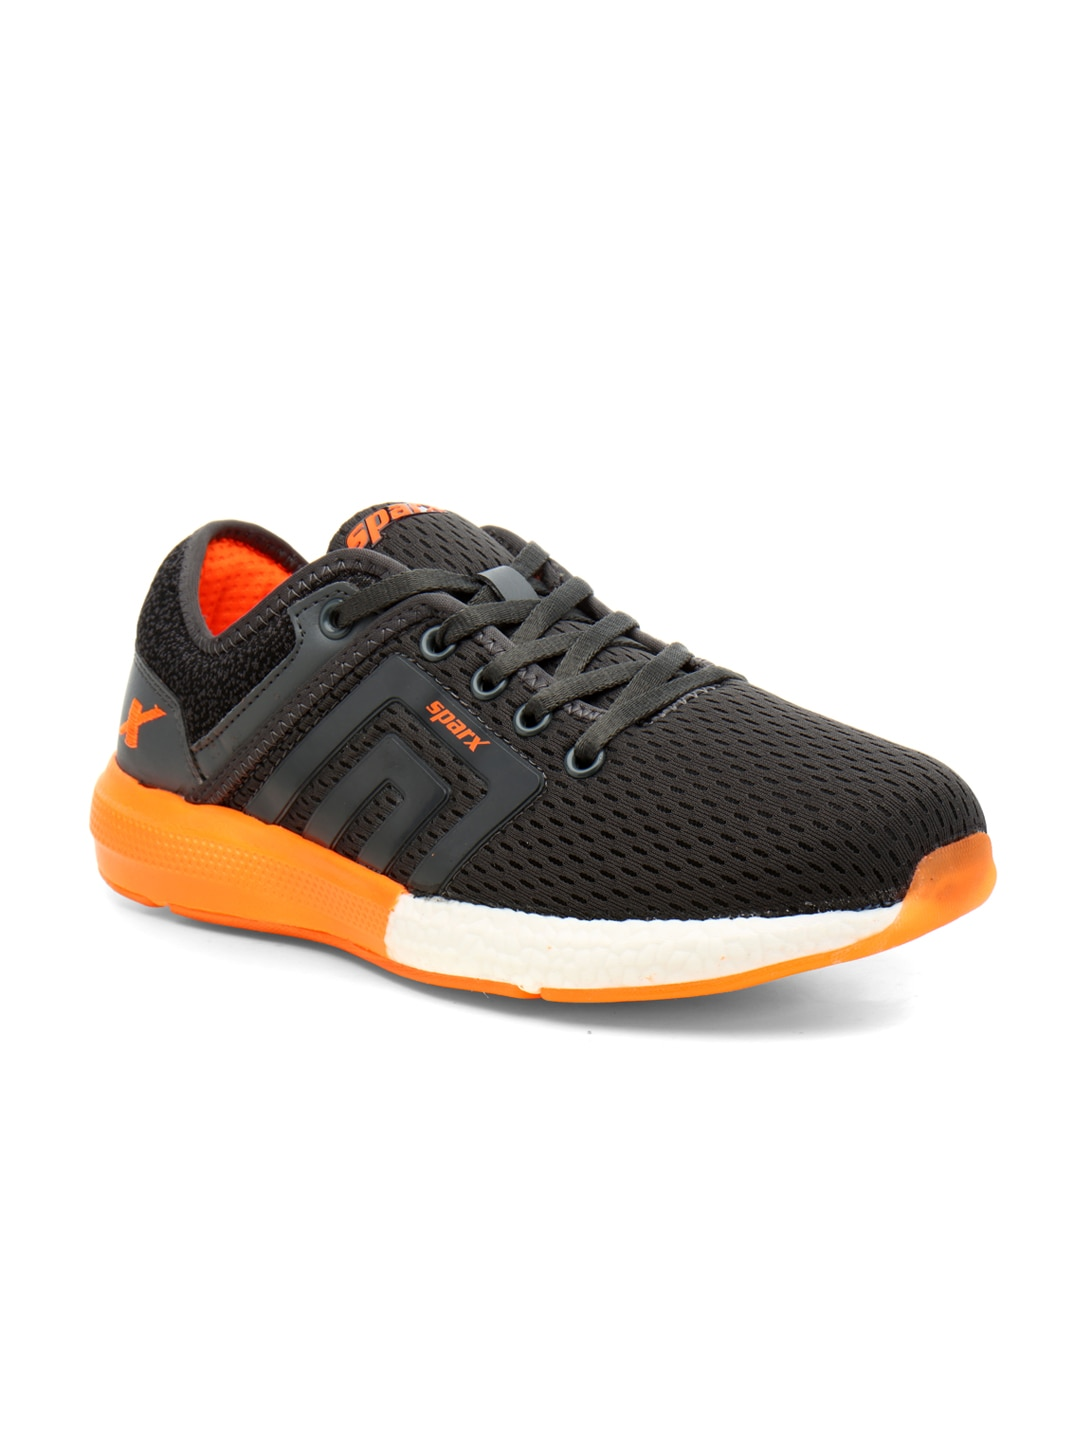 153dca9cda8b60 Men Sports Shoes Store - Buy Men Sports Shoes Store online in India